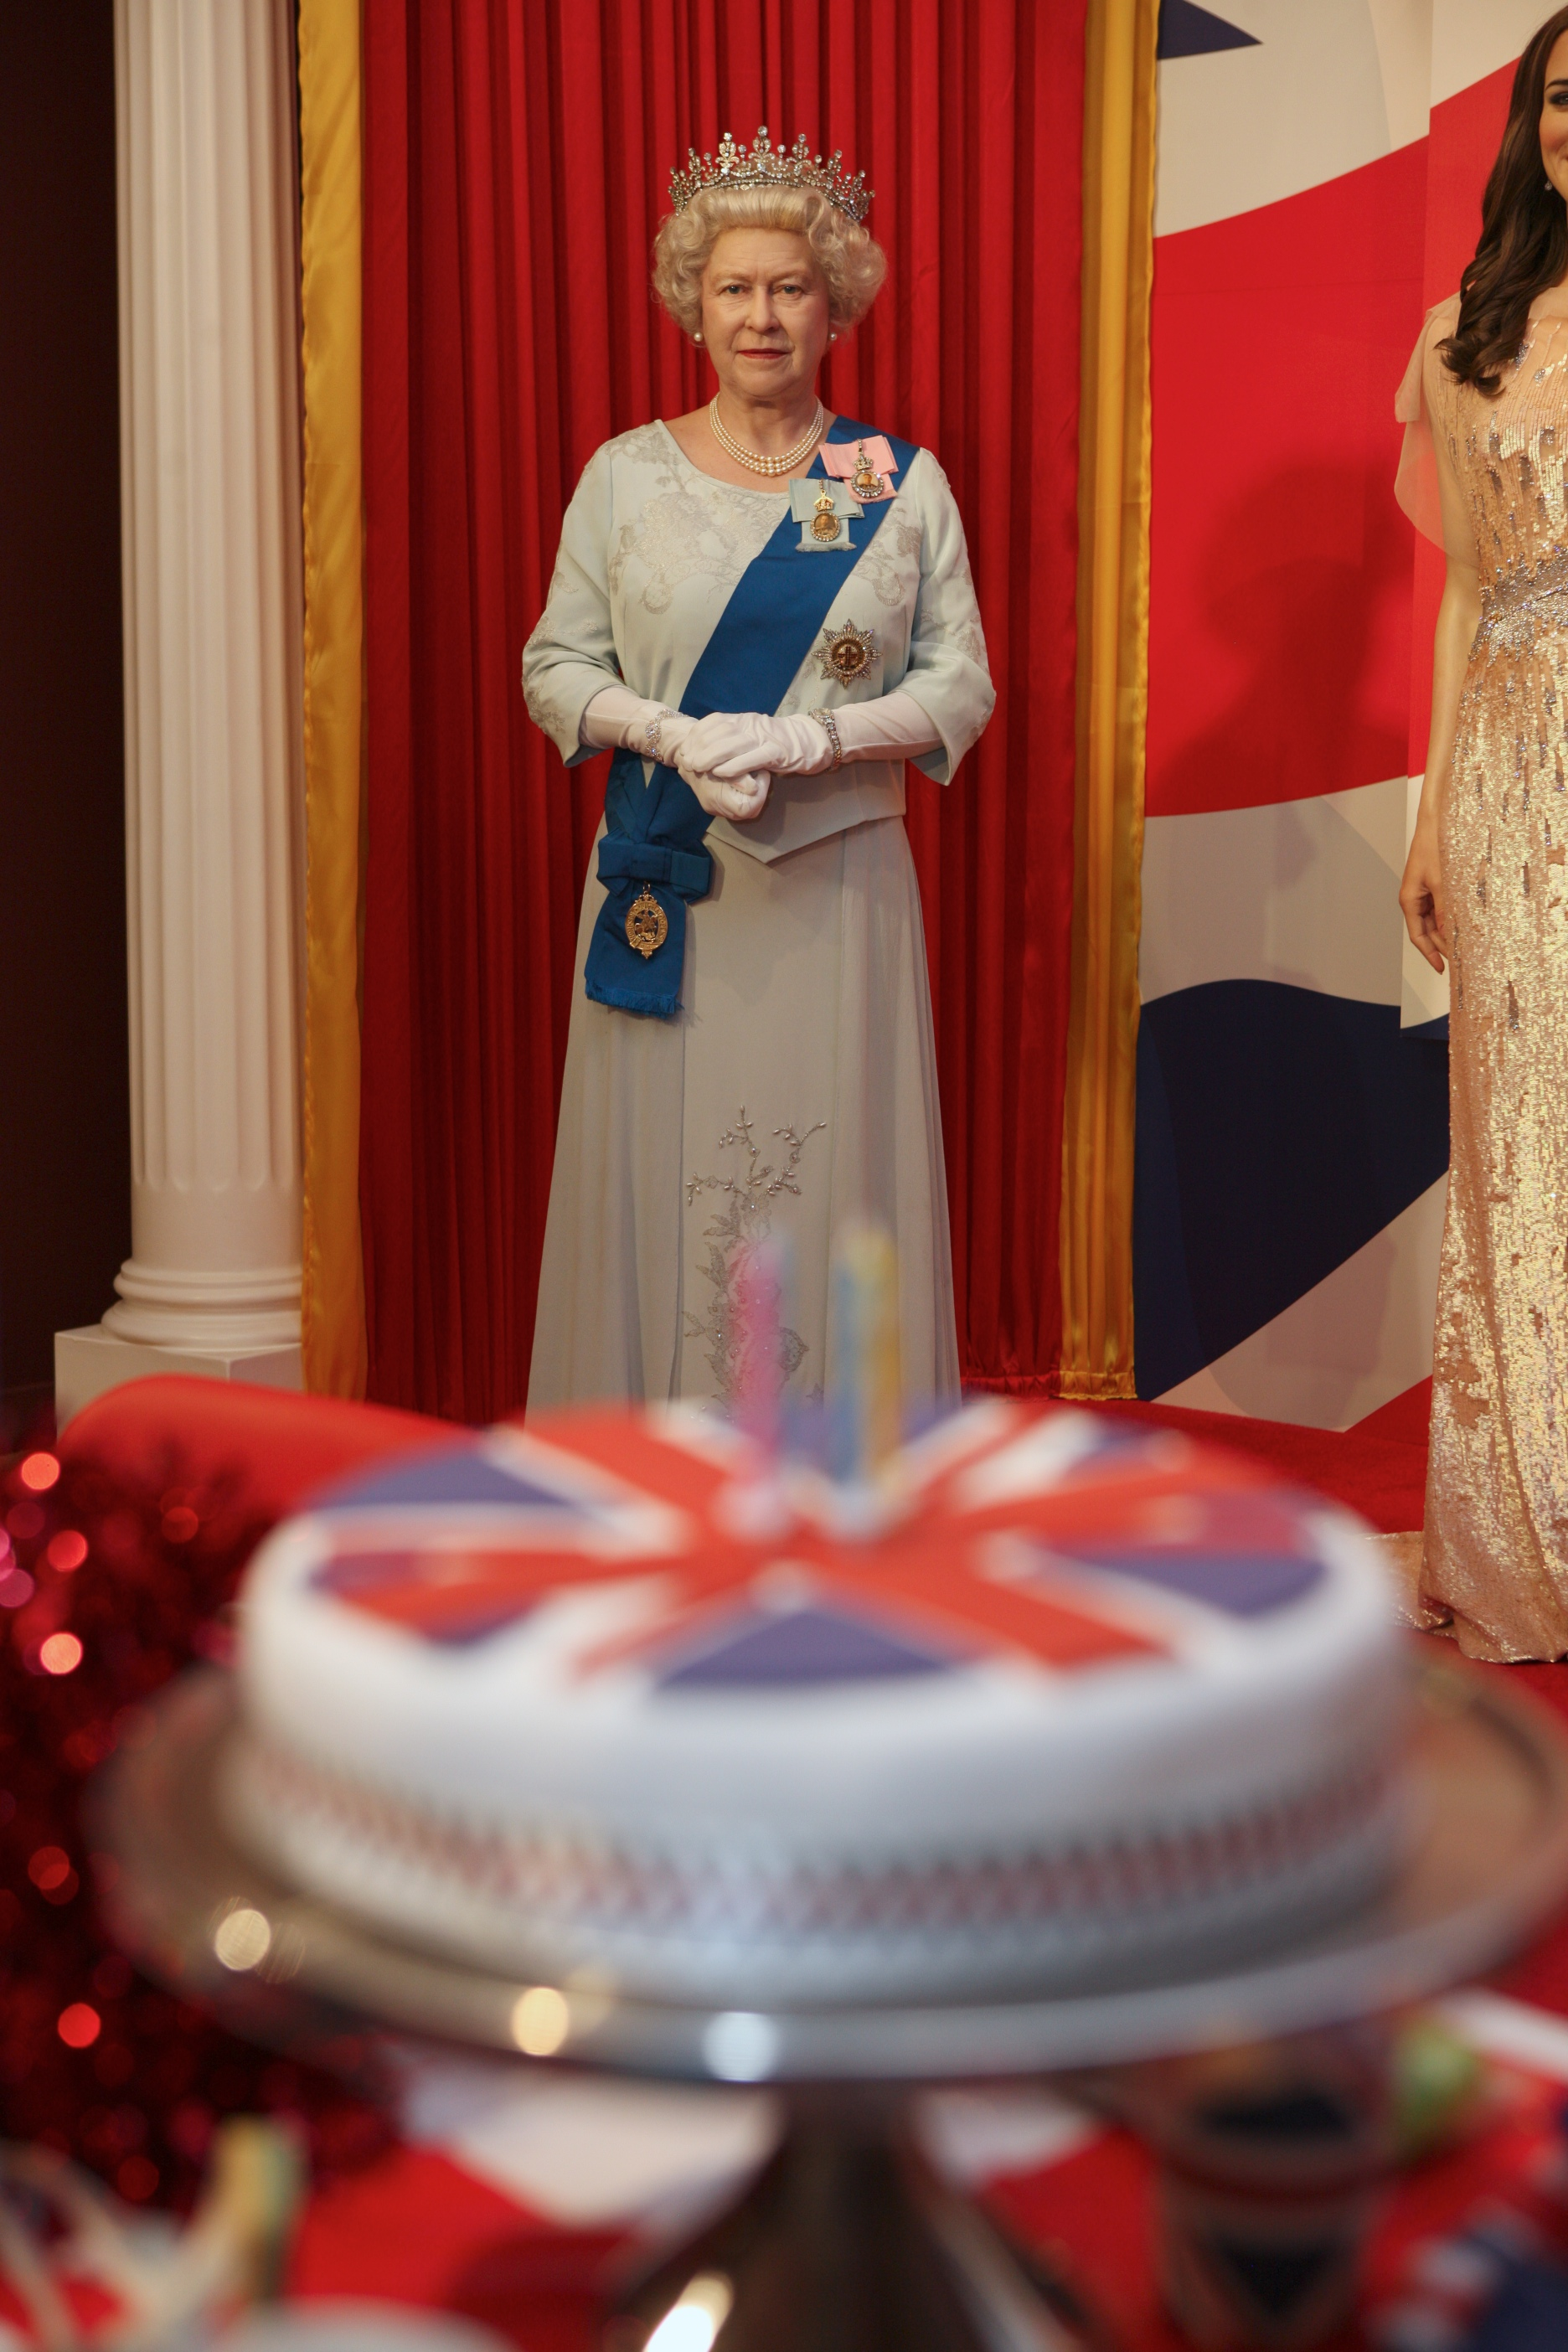 HRH The Queen wax figure at Madame Tussauds Blackpool